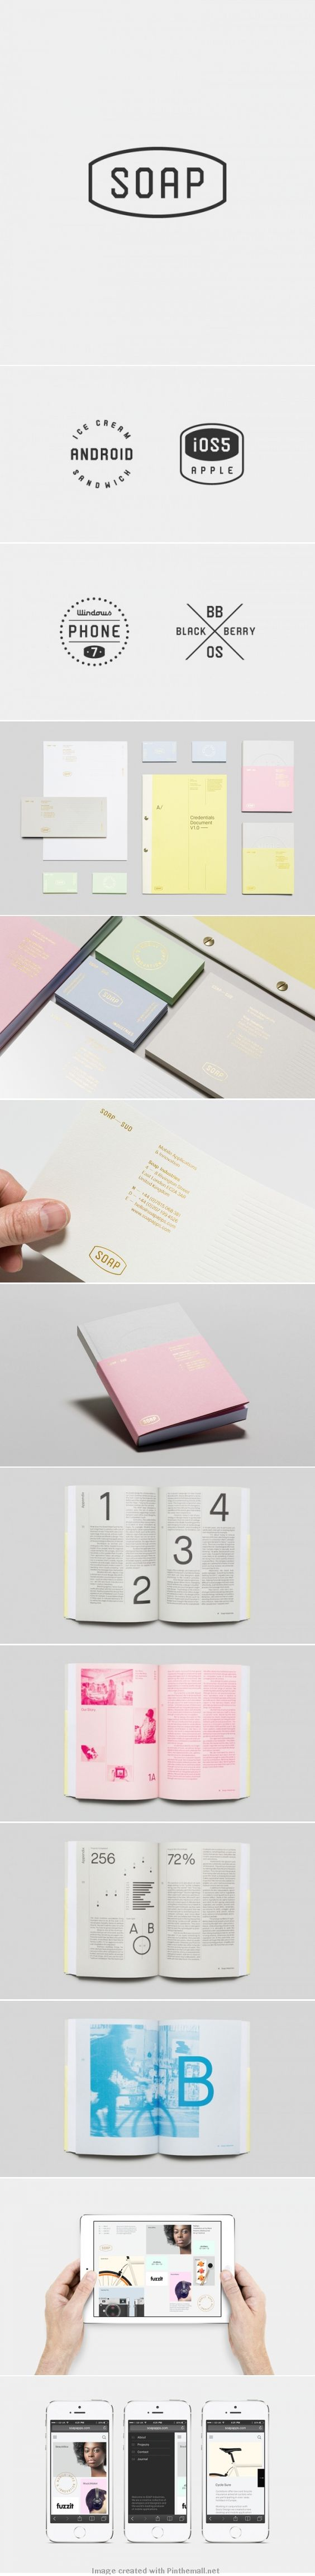 Soap Industries by SocioDesign